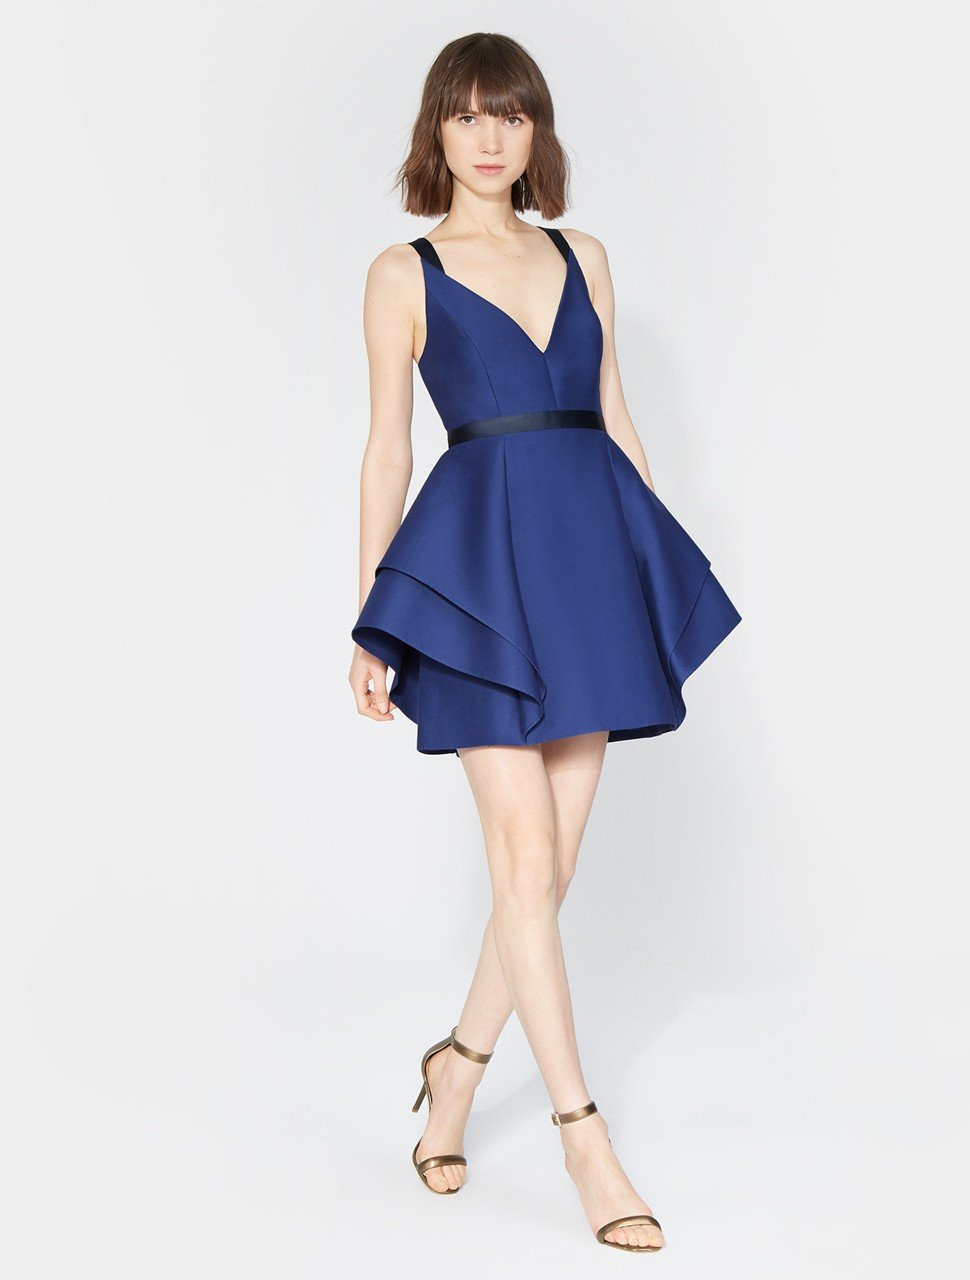 SLEEVELESS V NECK DRAMATIC FLOUNCE SKIRT DRESS